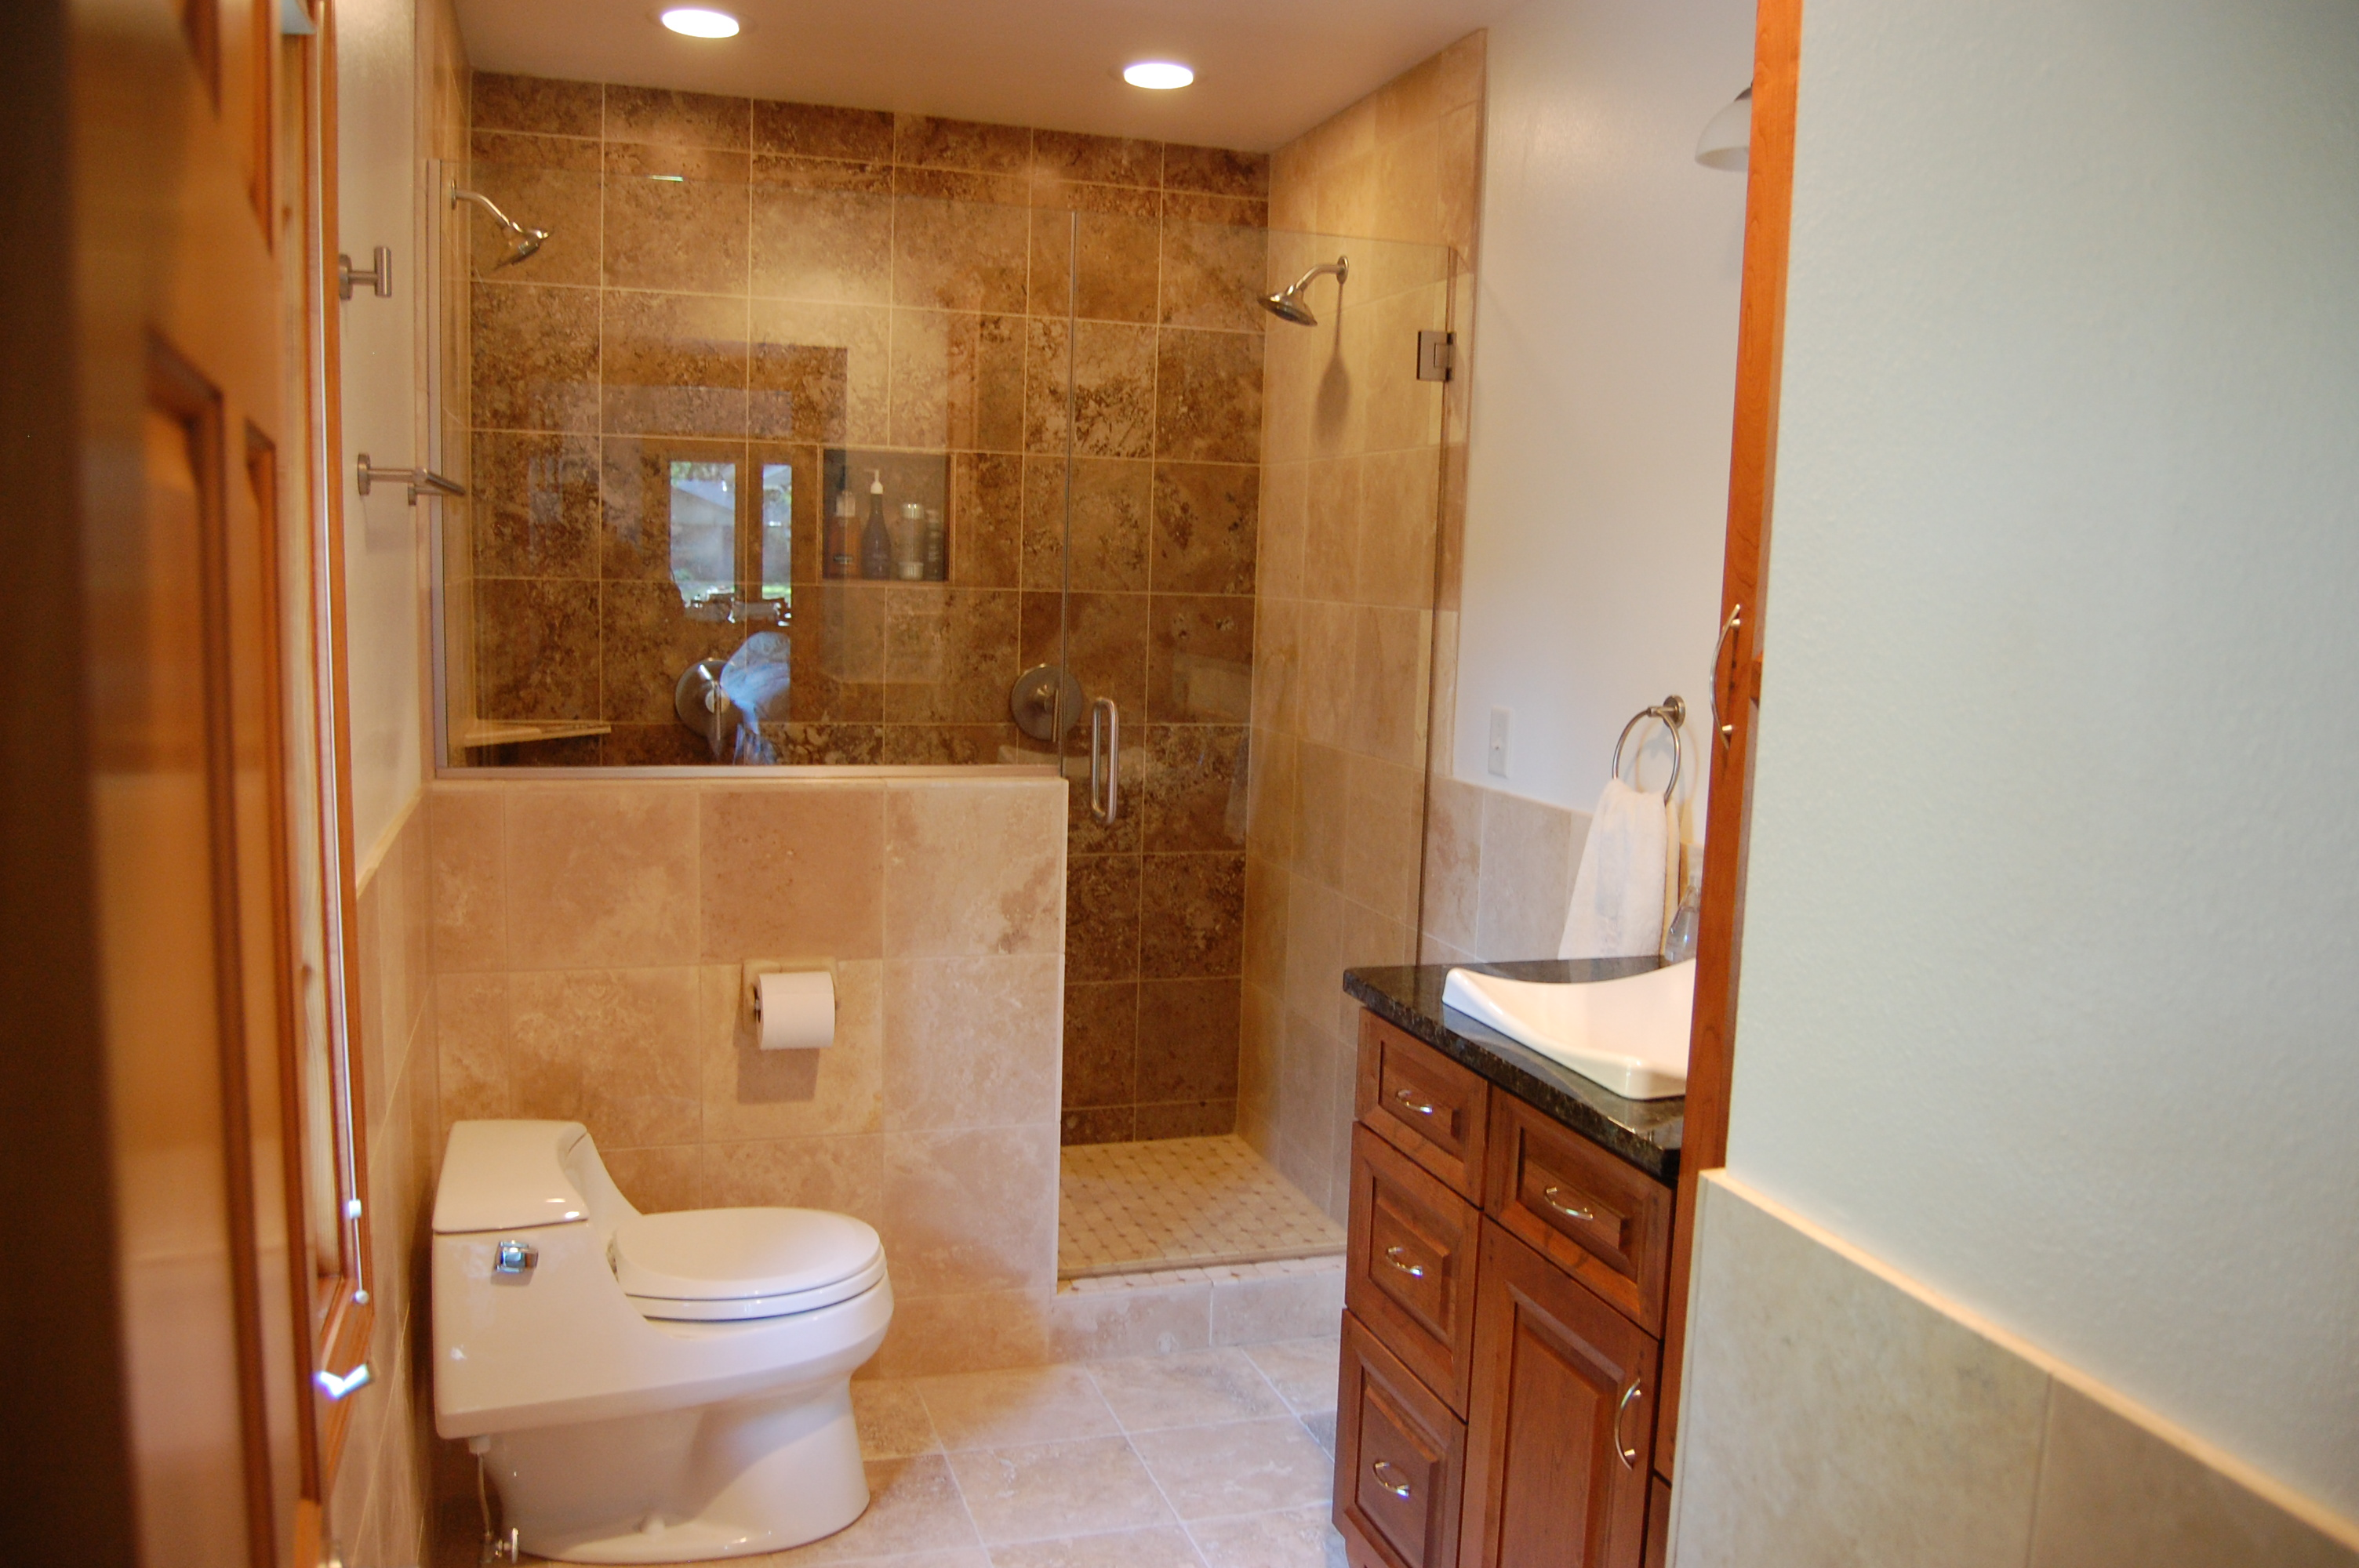 Bathroom Remodeling Contractor Portfolio Skirrow Remodel - Bathroom remodeling brookfield wi